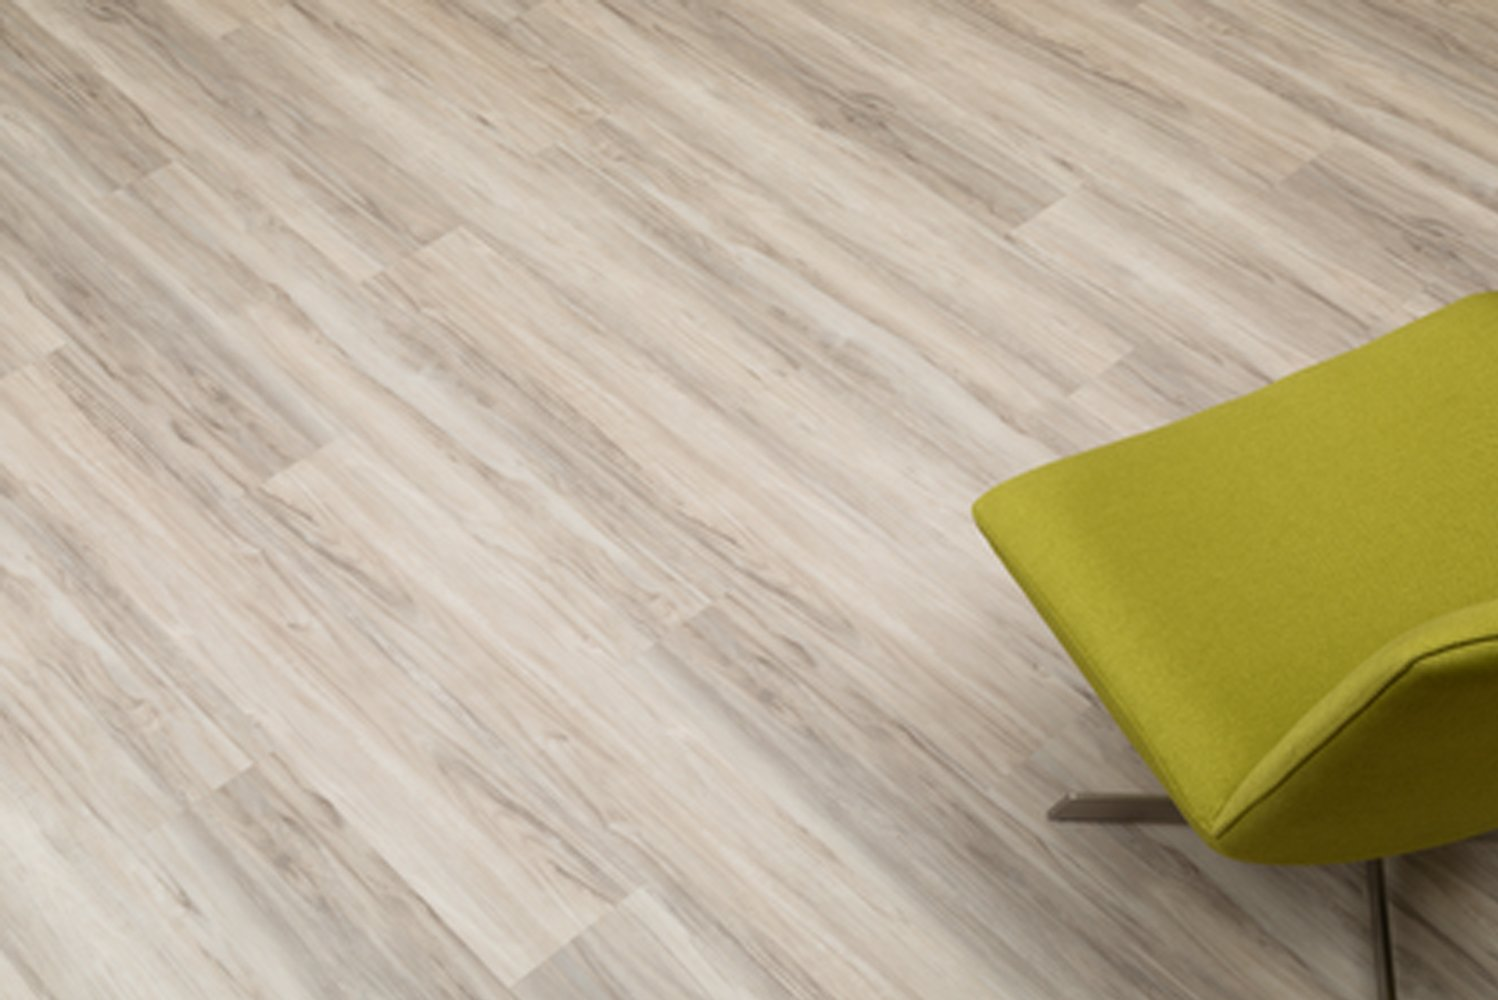 Parterre Flooring Systems introduced an addition of plank and tile designs to its Vertu luxury vinyl plank collection.